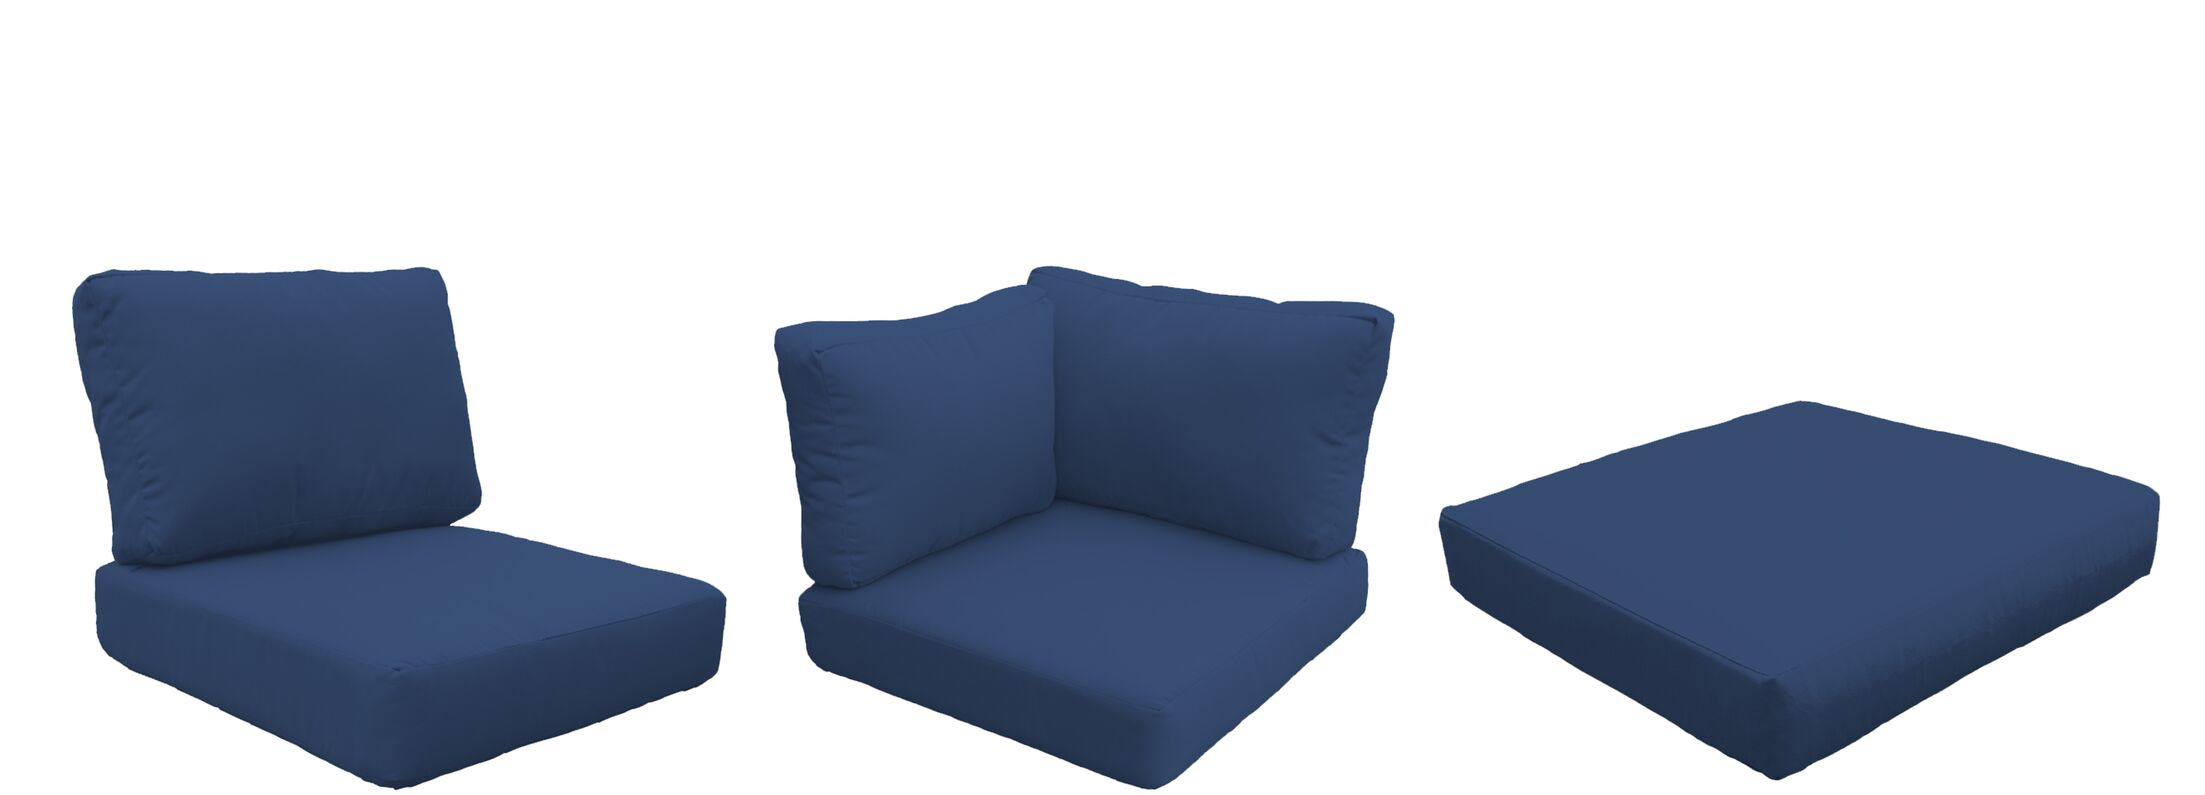 Eldredge Outdoor 18 Piece Lounge Chair Cushion Set Fabric: Navy